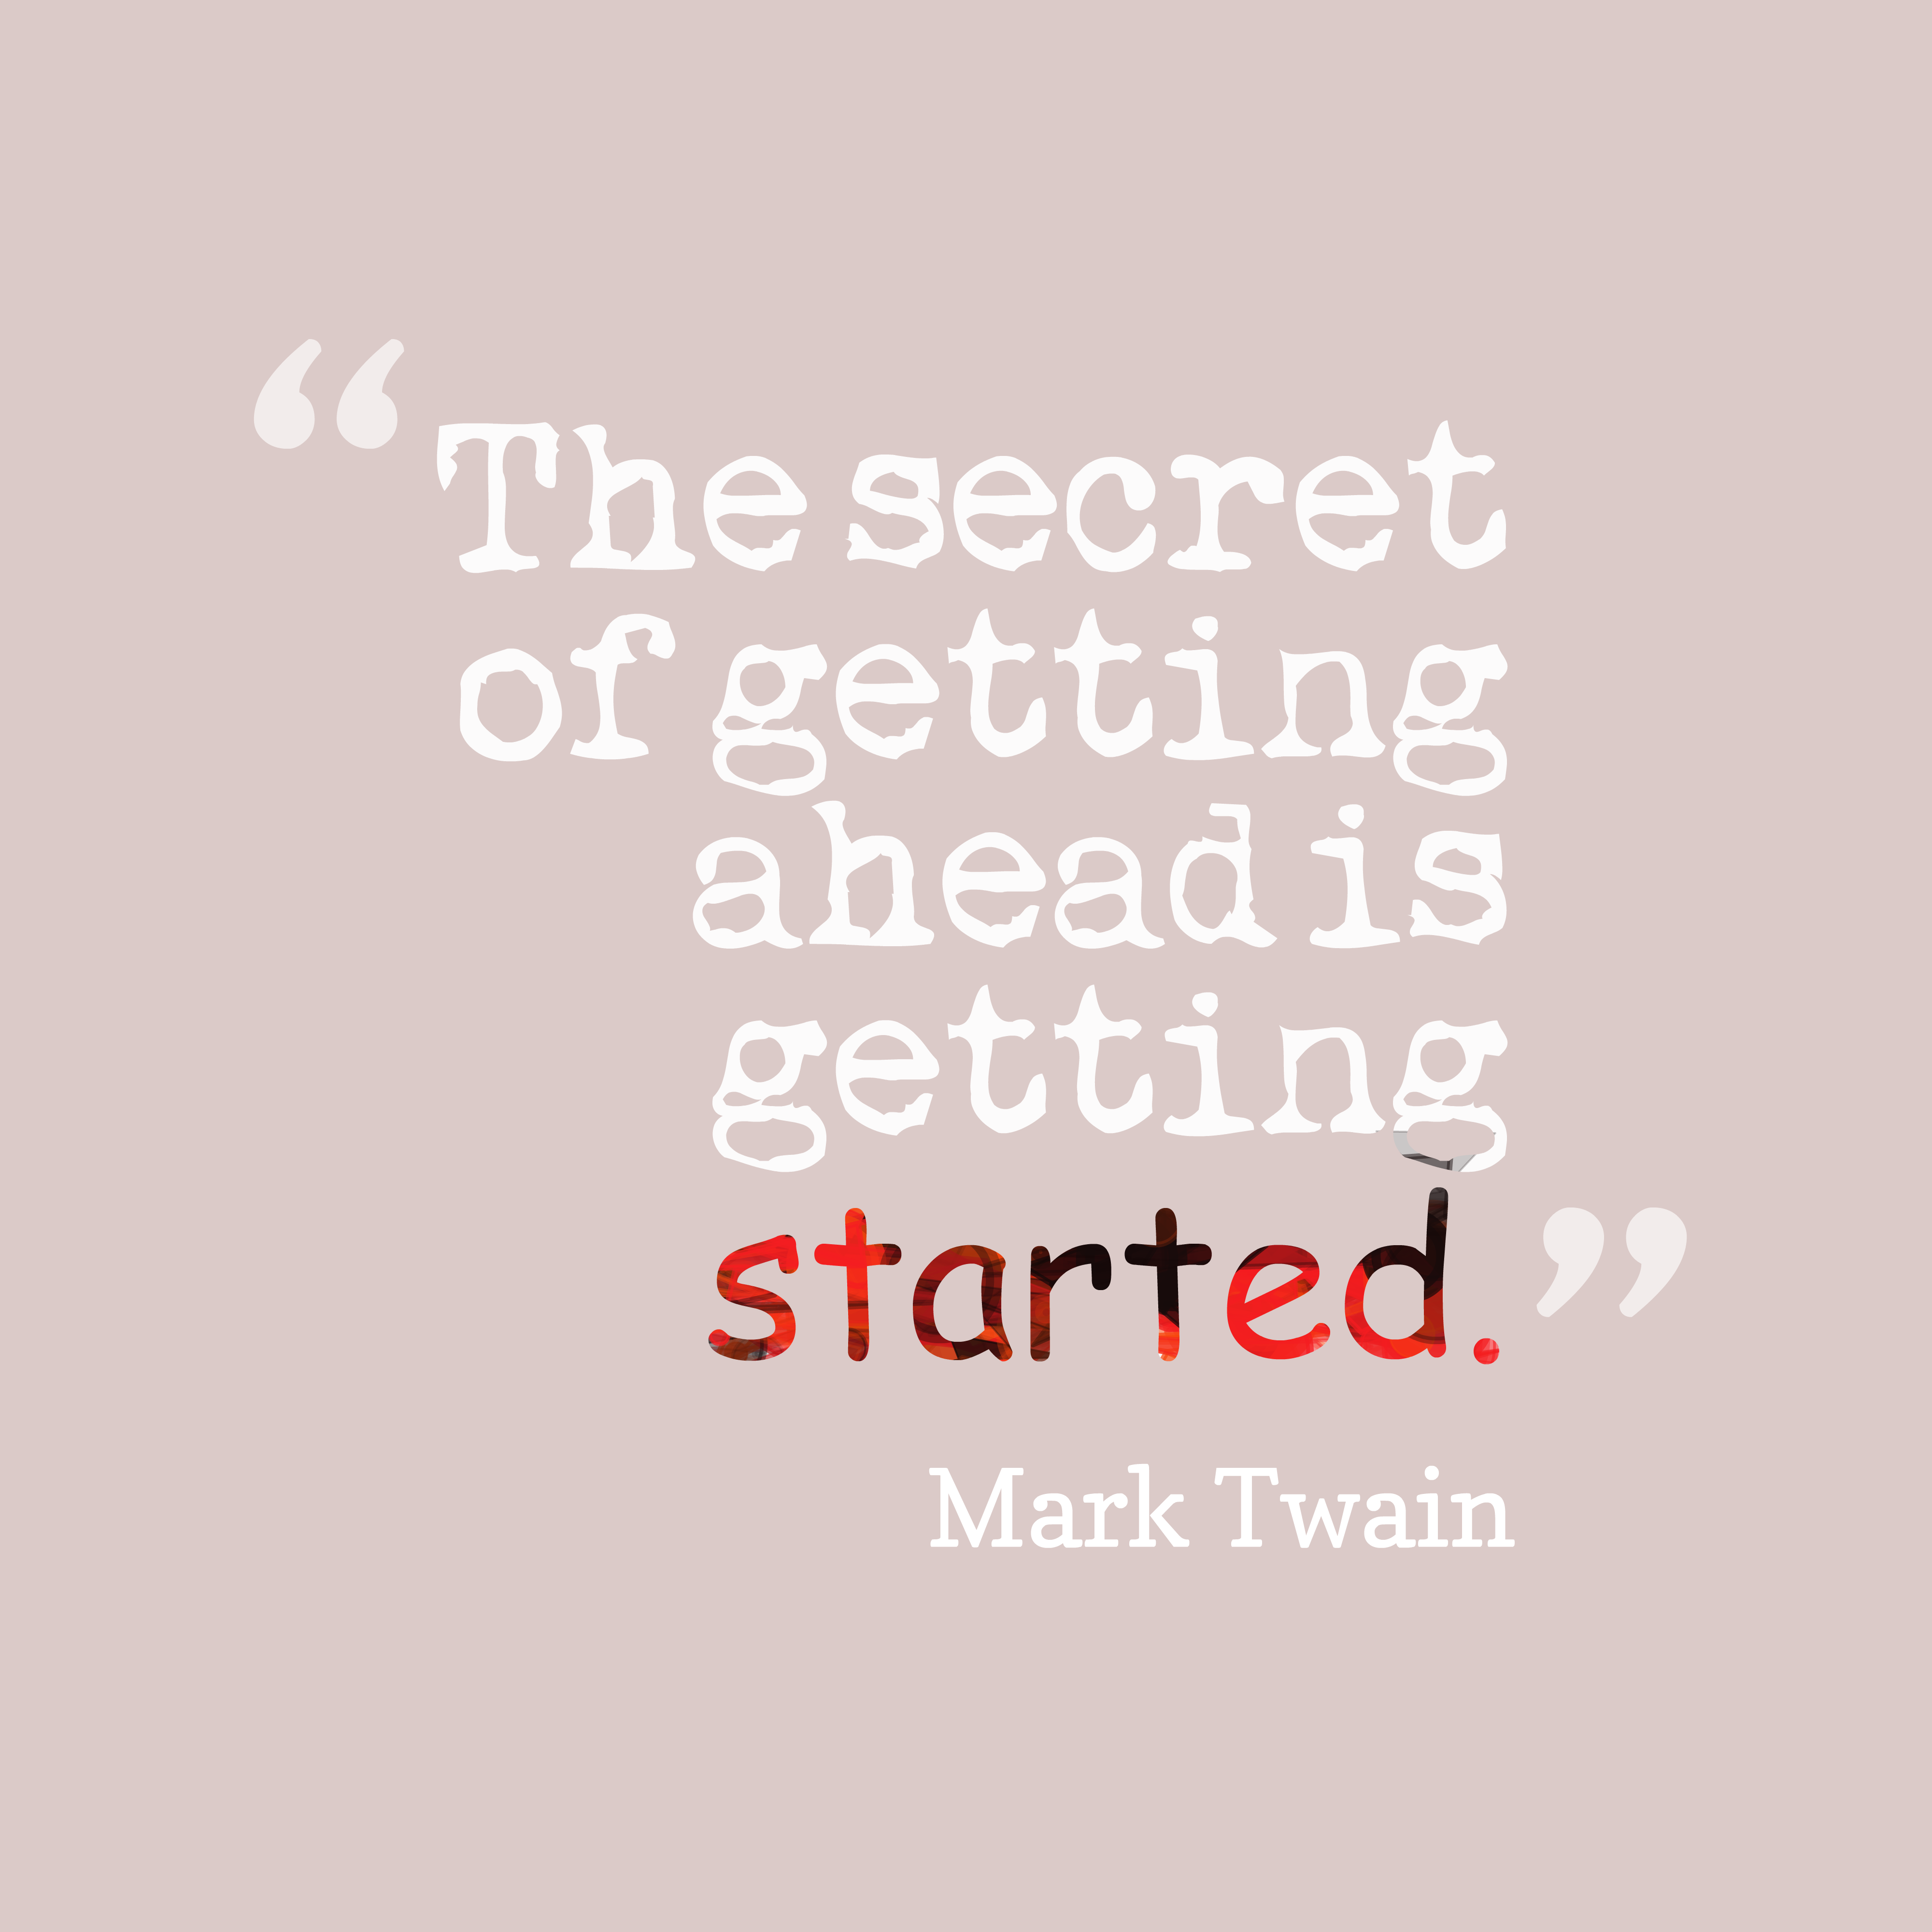 The Secret Quotes Picture Mark Twain Quote About Secret Quotescover